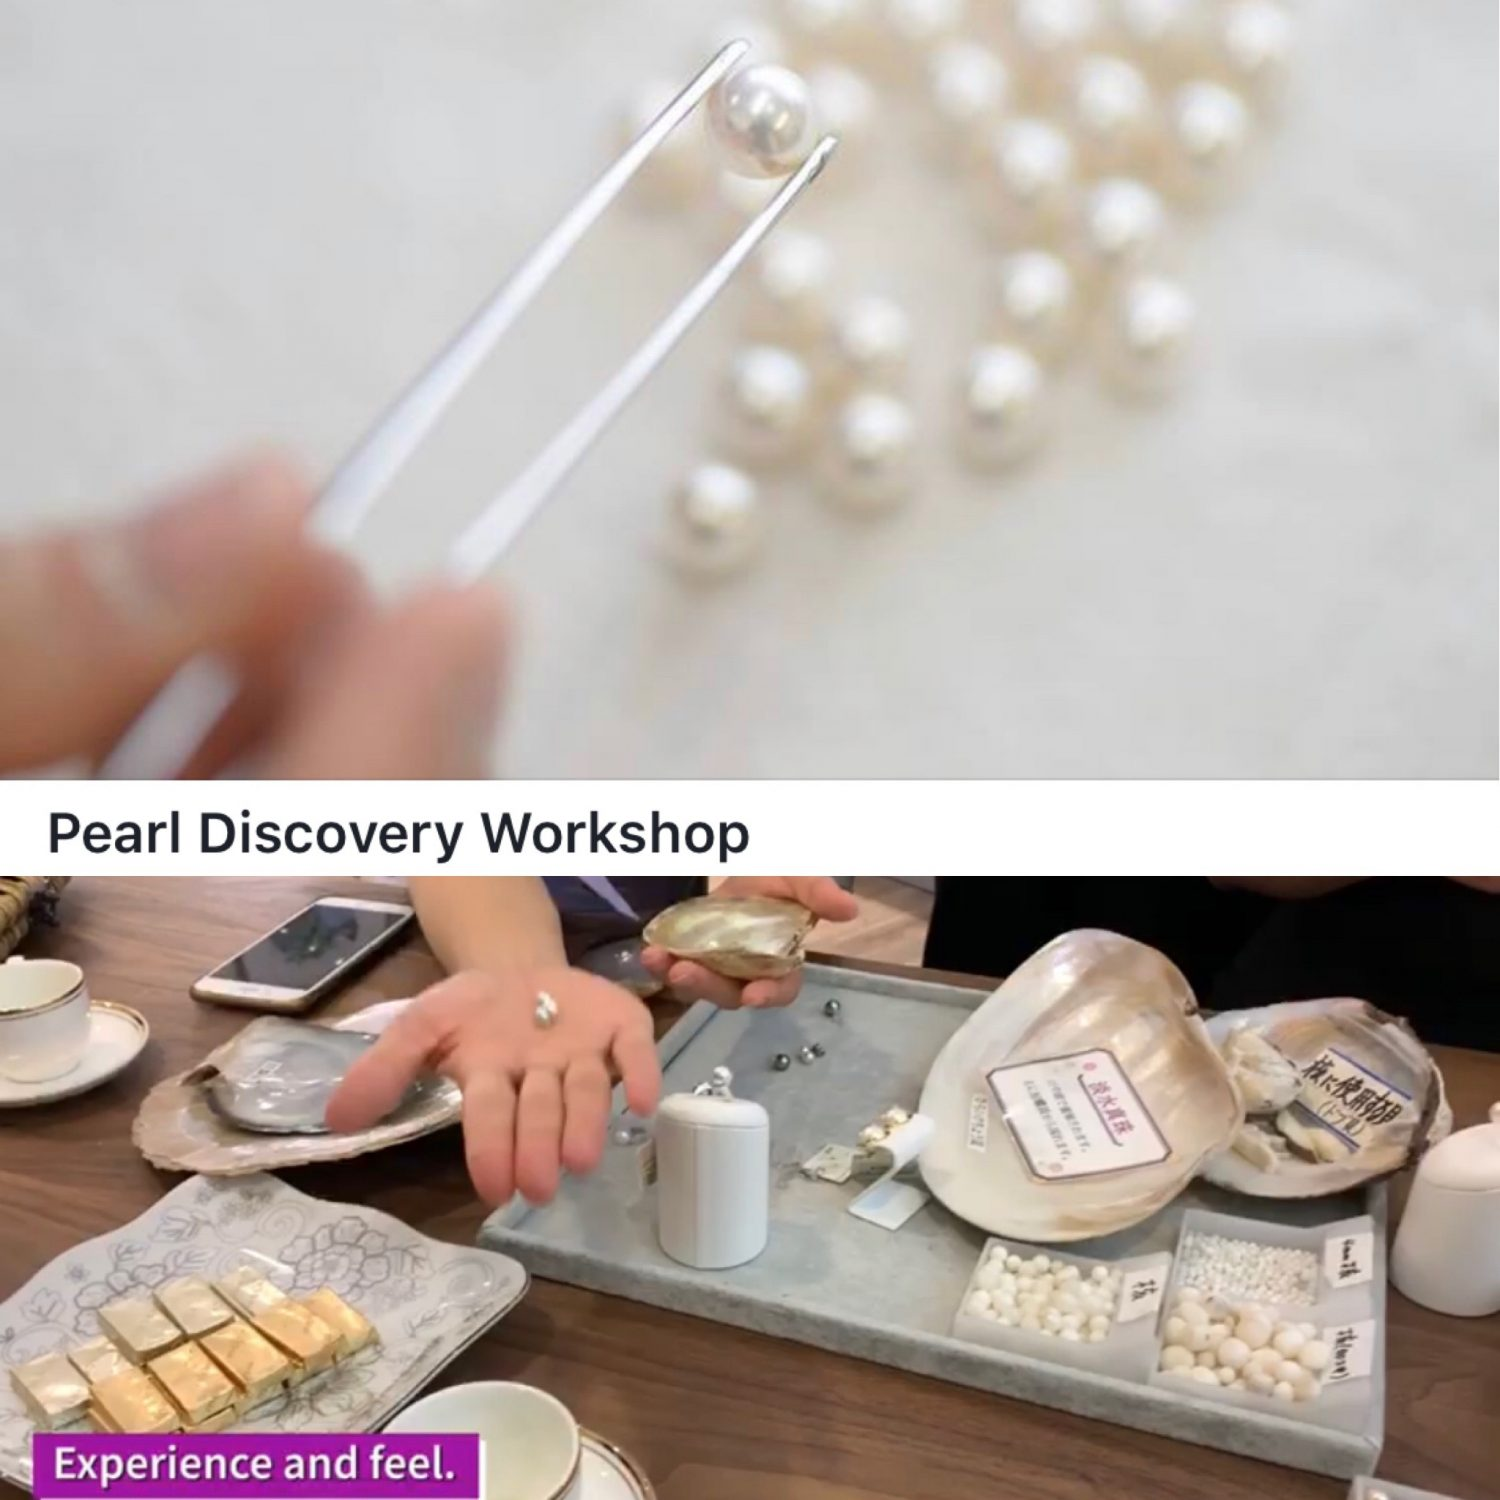 Pearl Discovery Workshop Start in Singapore シンガポールで真珠についてのWorkshop開始